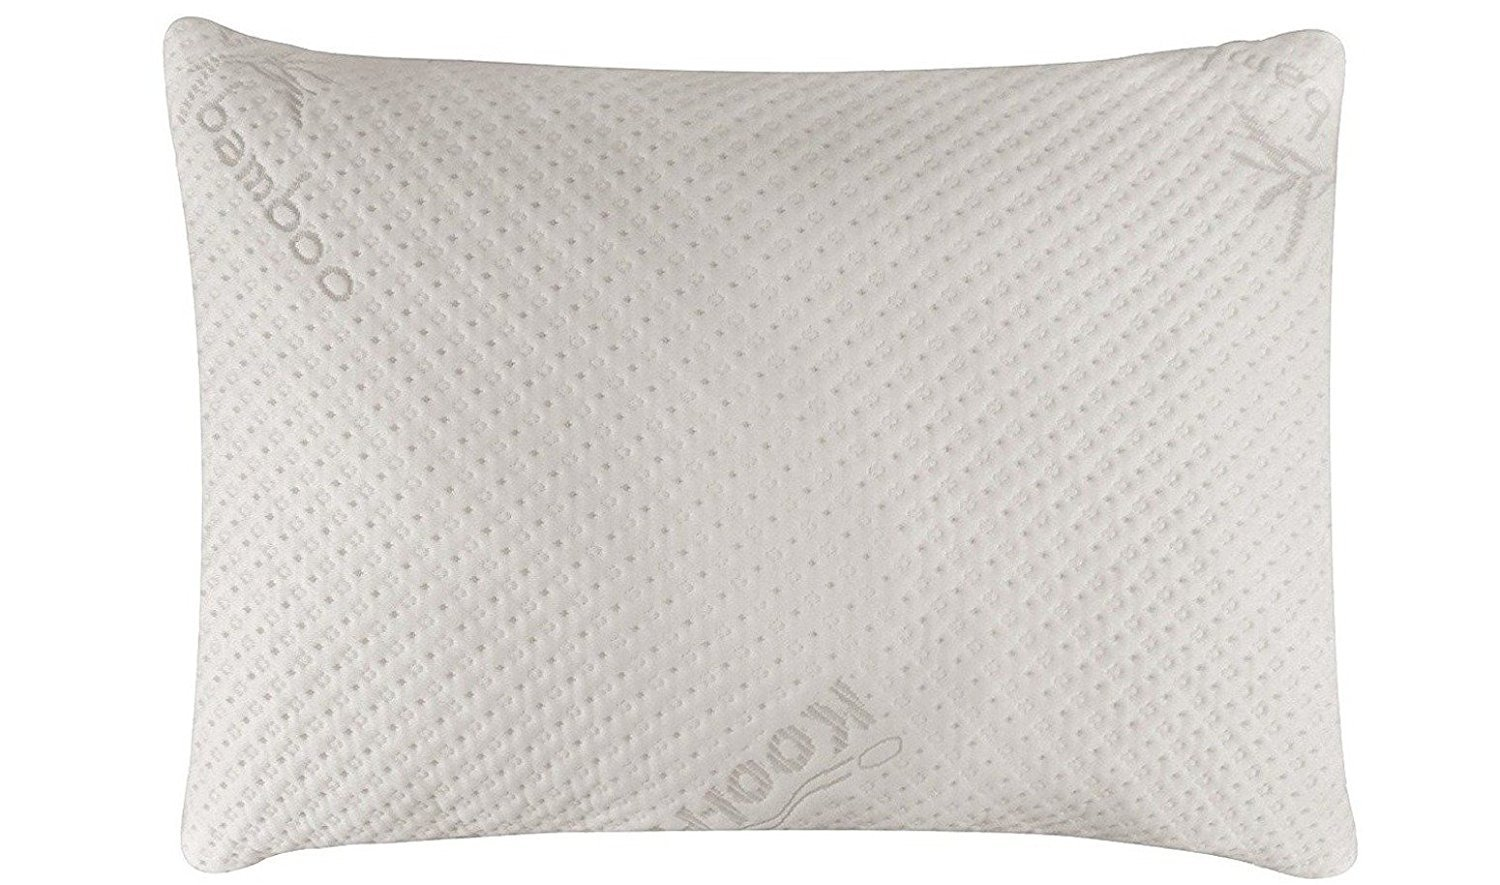 Snuggle-Pedic Ultra-Luxury Memory Foam Pillow Black Friday Deal 2020